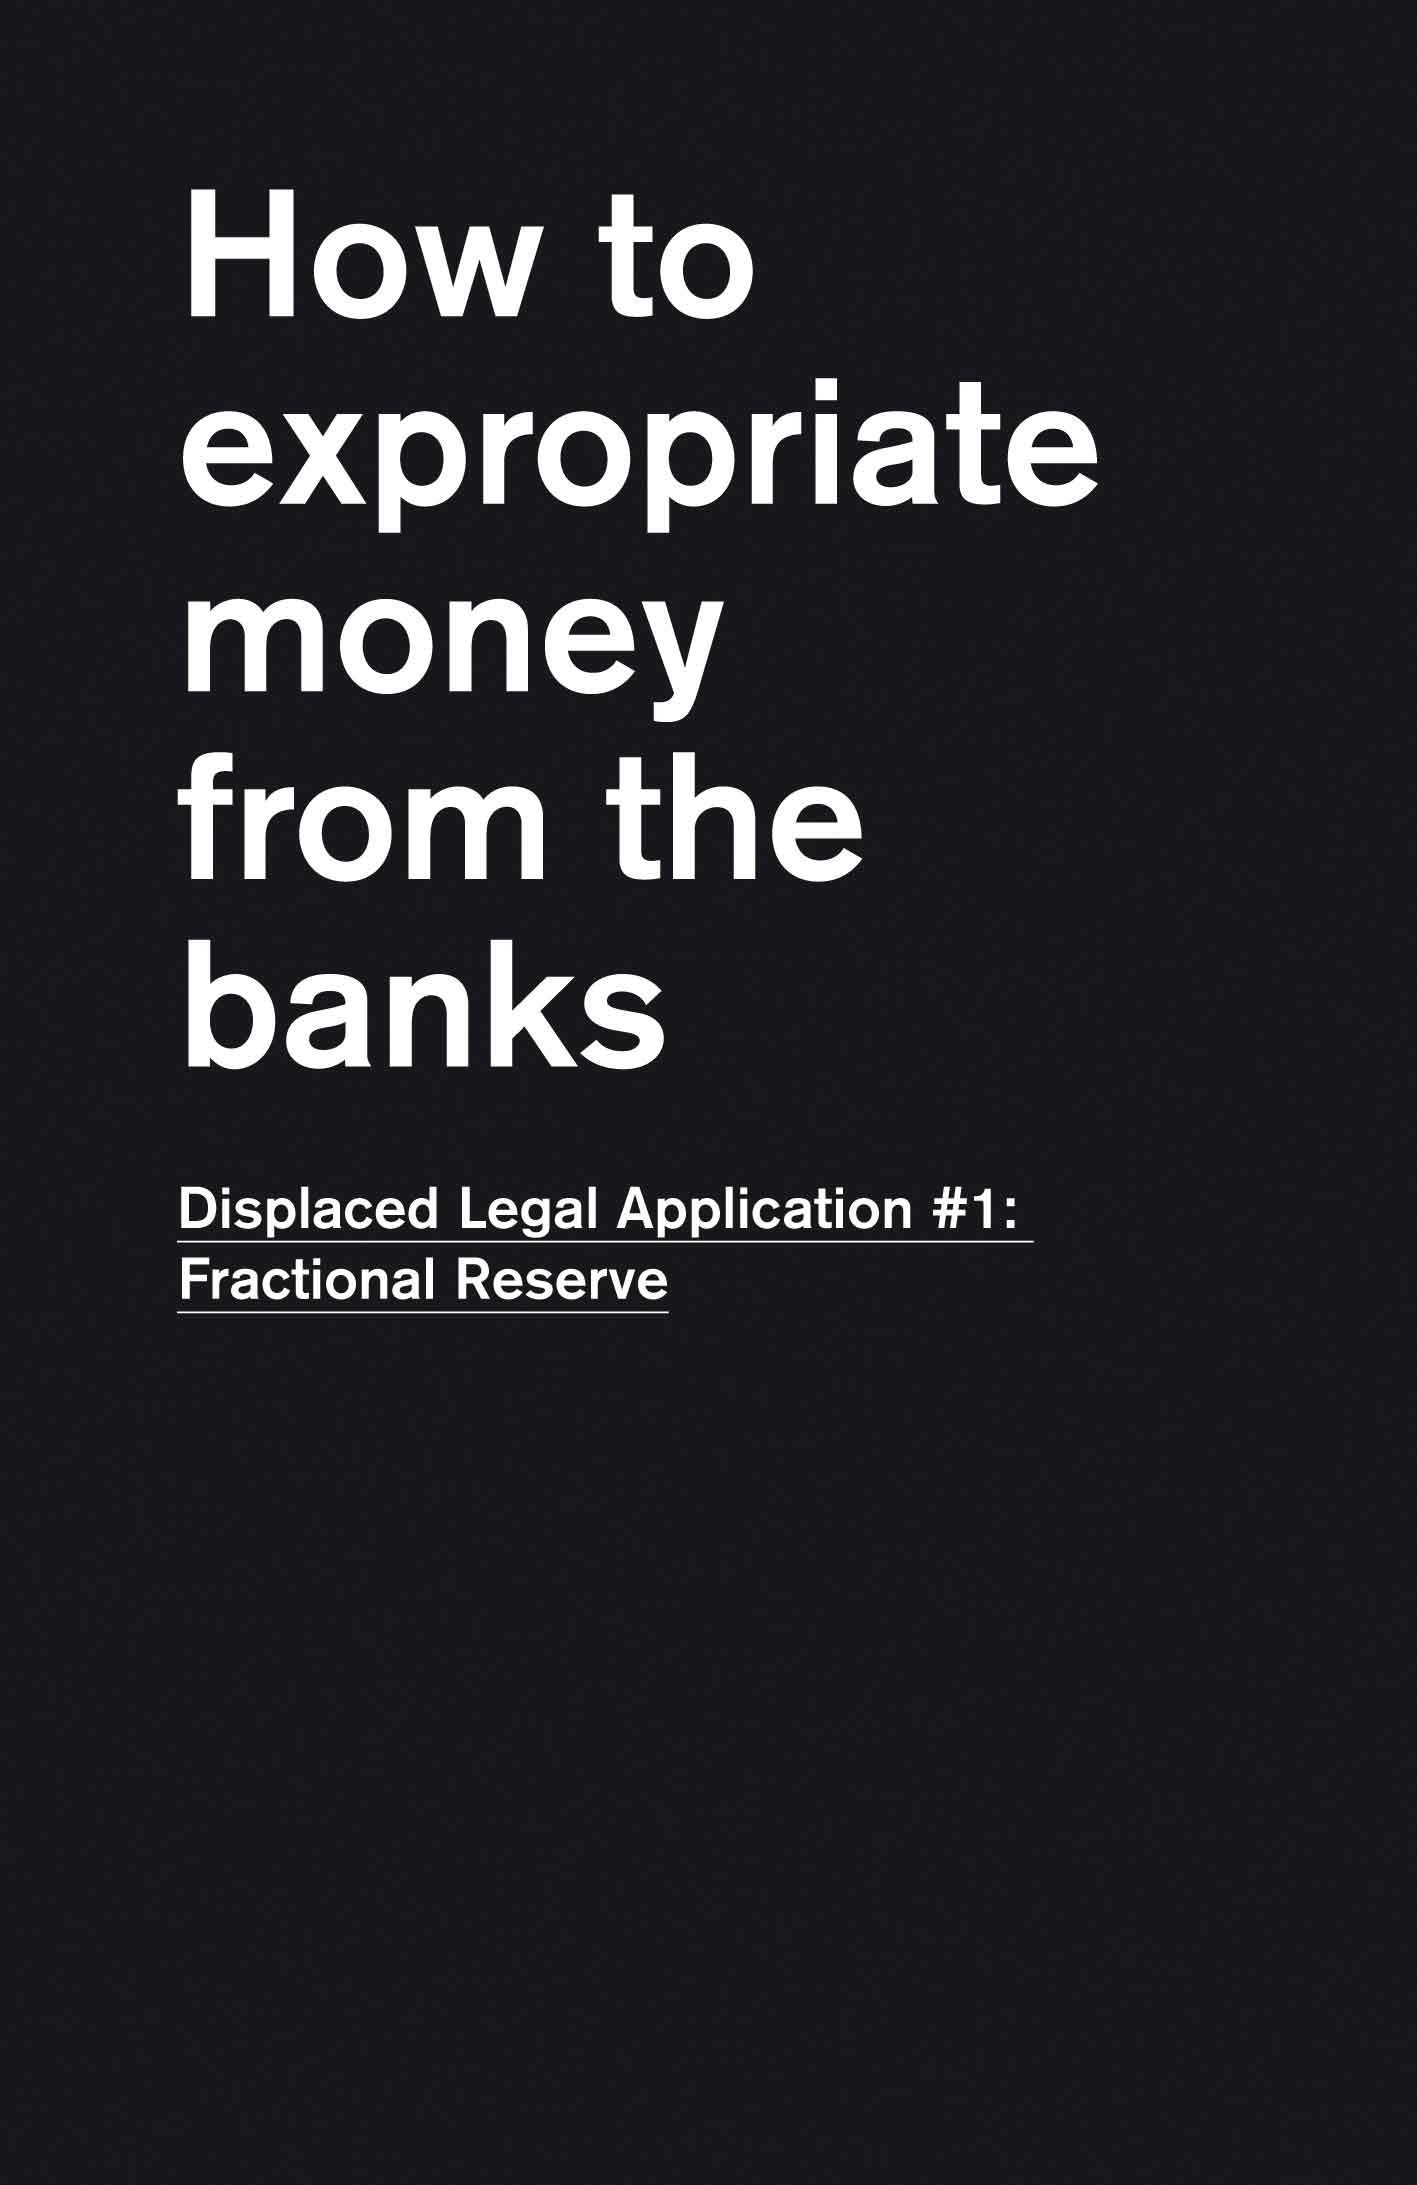 Nuria Gell, Displaced Legal Aplication #1: Fractional Reserve. &quot;How to expropiate money from the banks&quot; Handbook. (2009-2011). Courtesy of the artist.